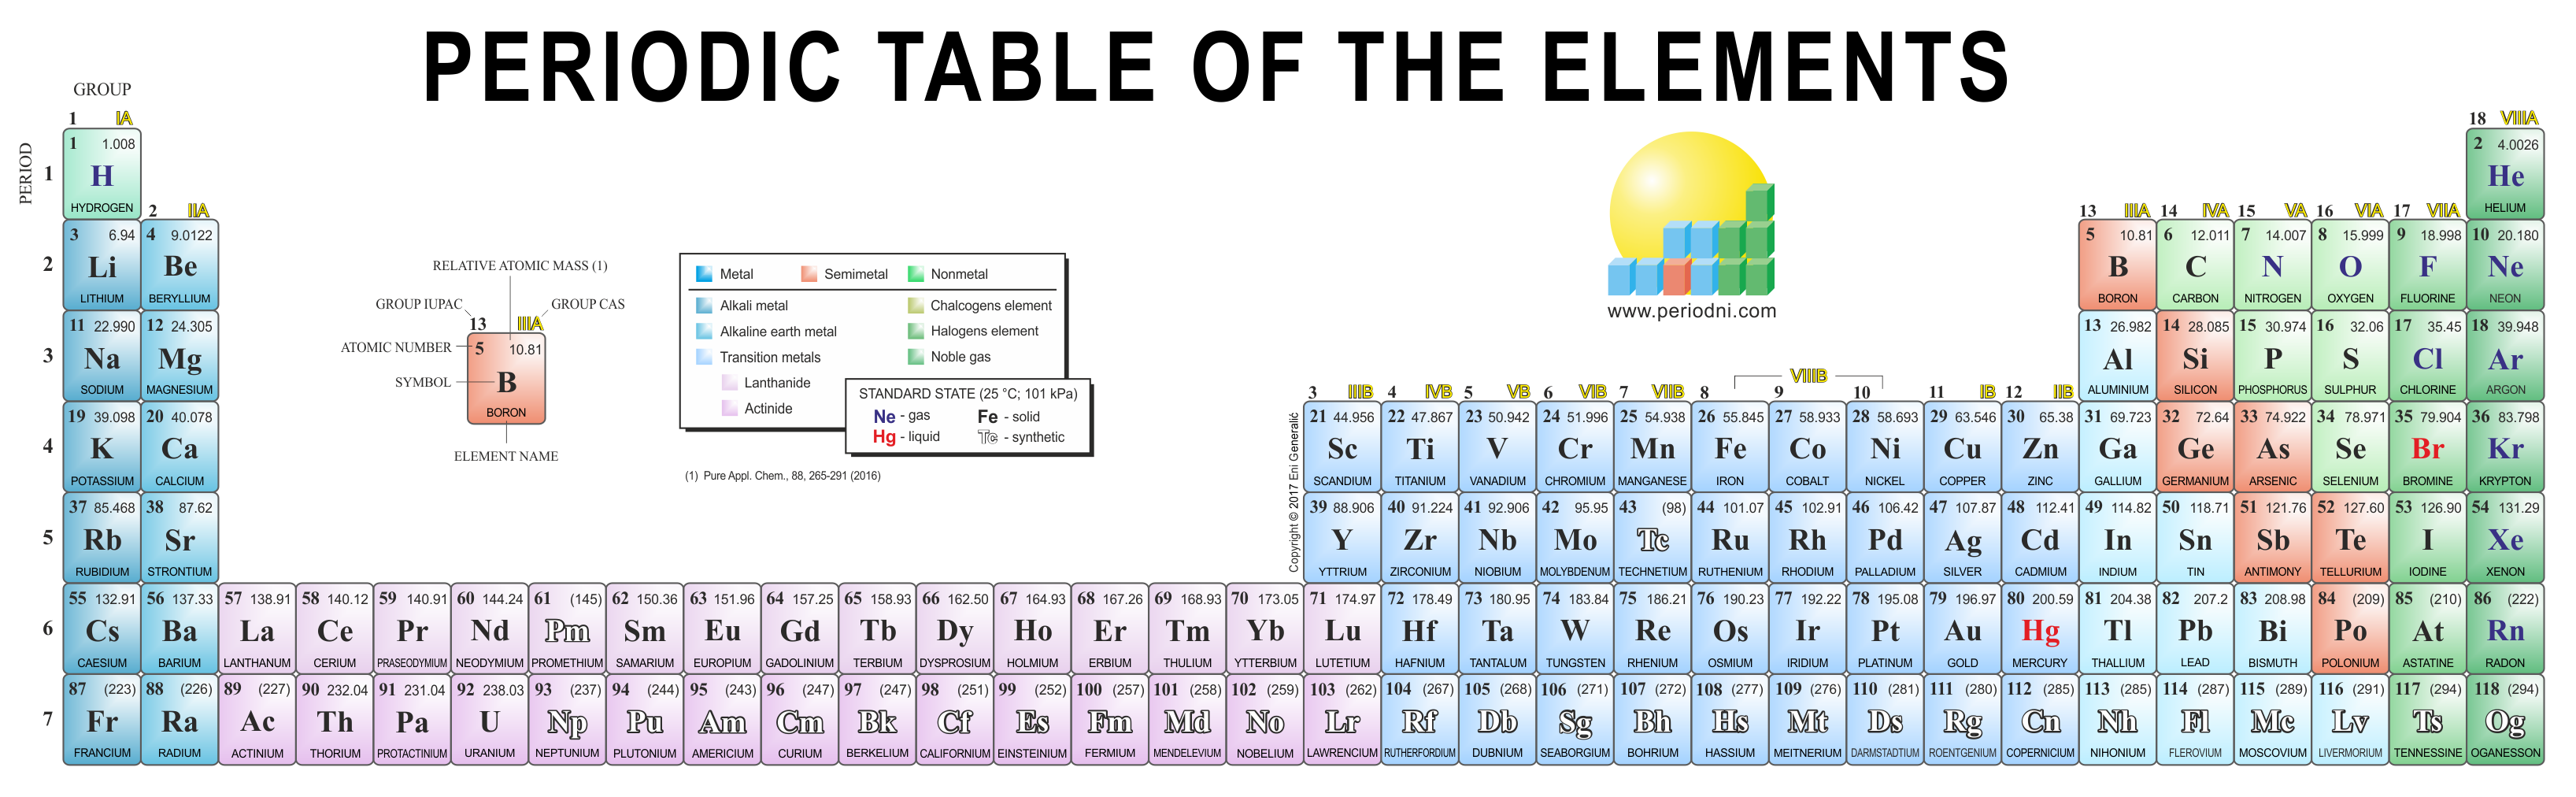 Chemistry images gallery 32 column periodic table urtaz Gallery